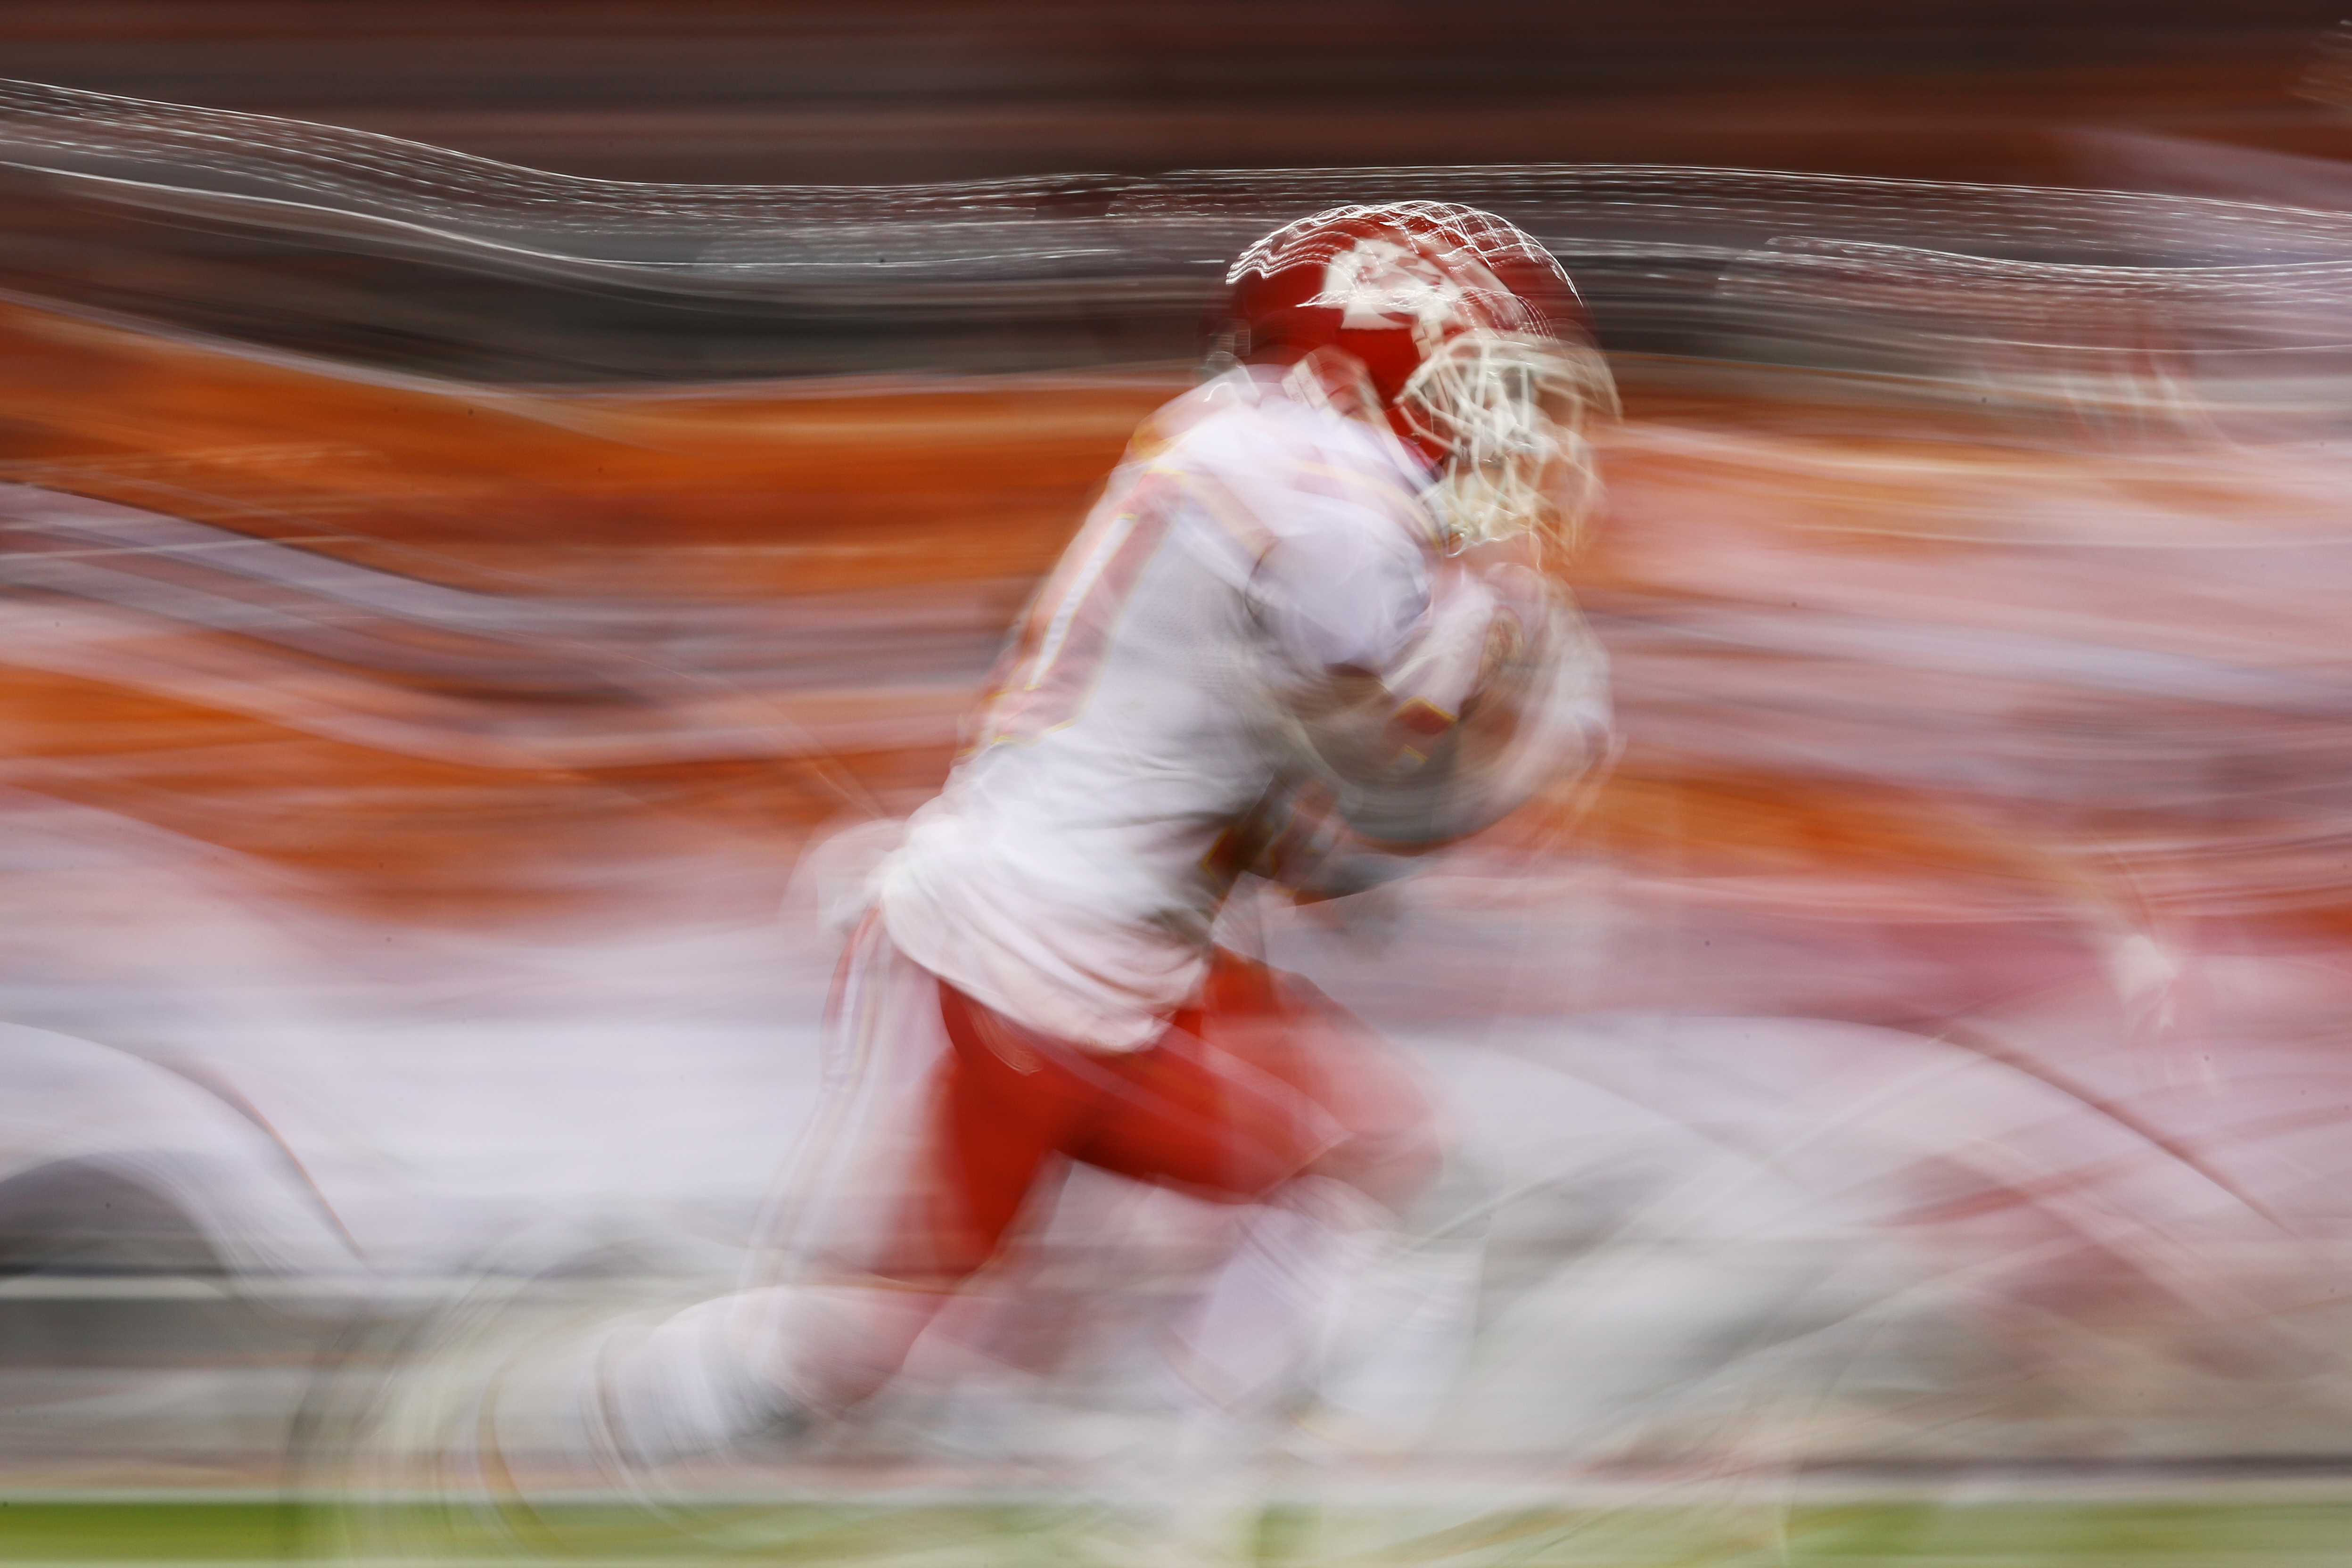 Wide receiver Tyreek Hill #10 of the Kansas City Chiefs returns a punt in the first quarter of the game against the Denver Broncos at Sports Authority Field at Mile High on November 27, 2016 in Denver, Colorado. (Photo by Ezra Shaw/Getty Images)